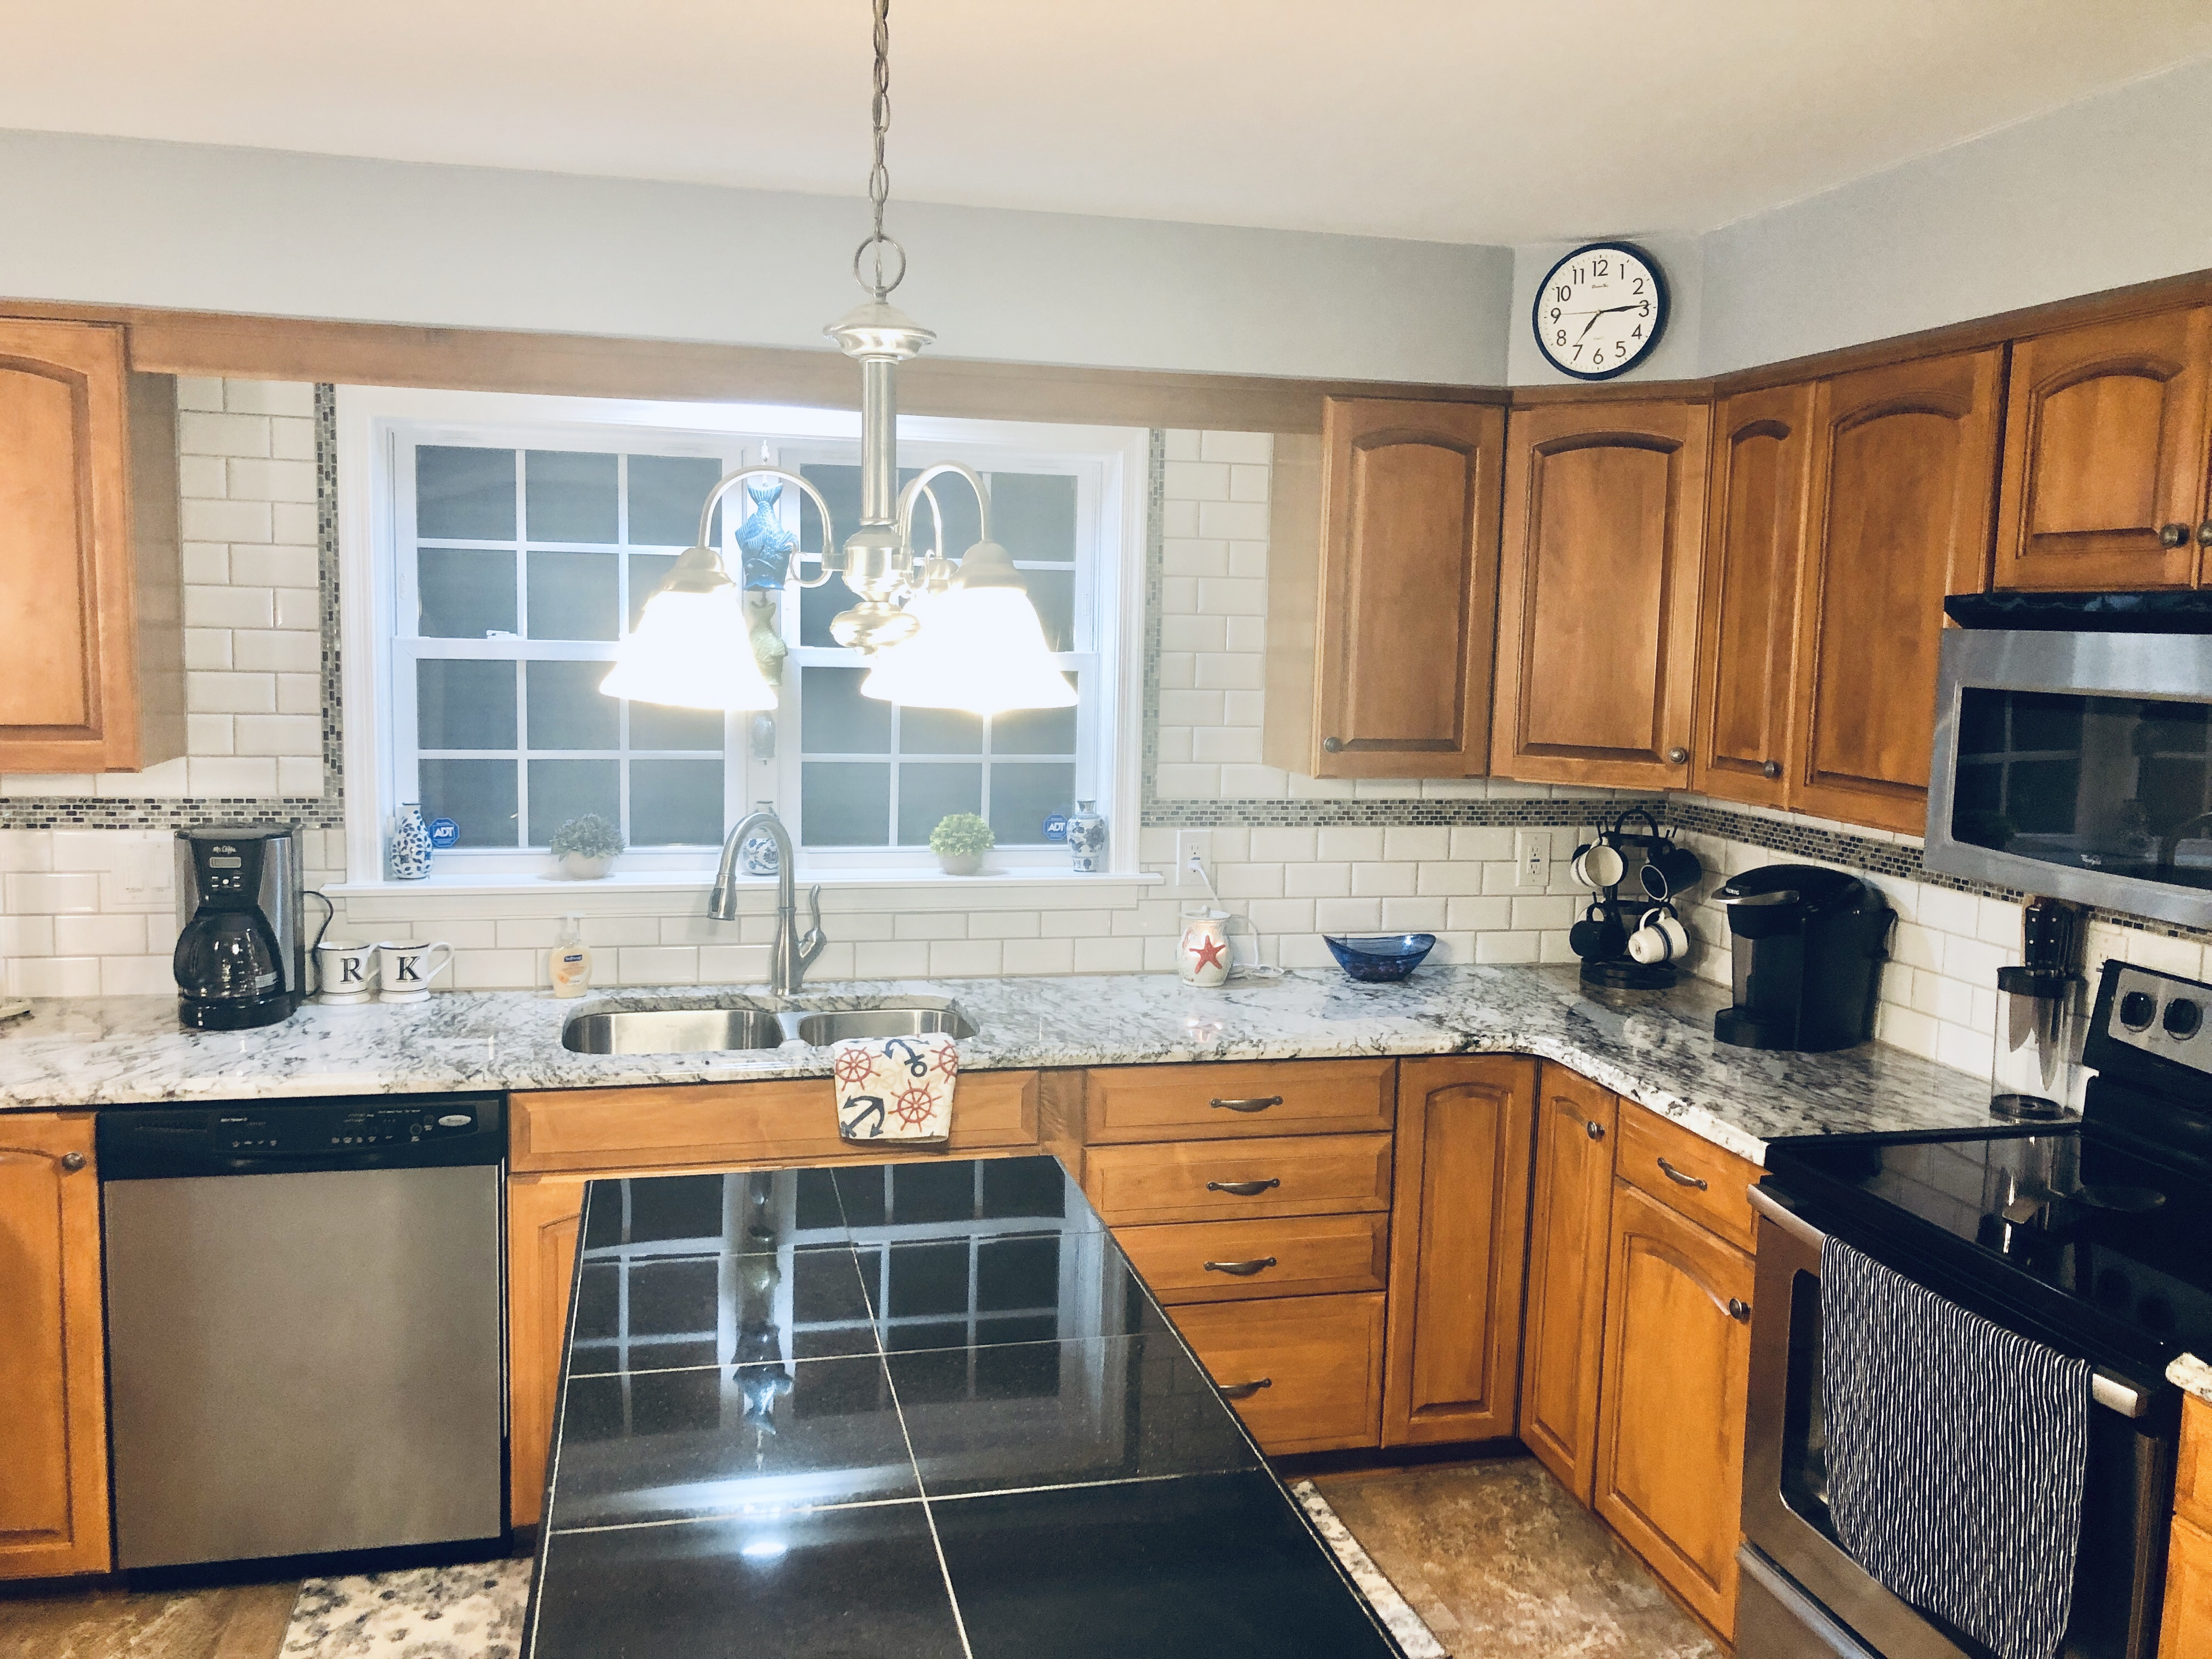 Center island that adds more worktop space to an already massive kitchen.